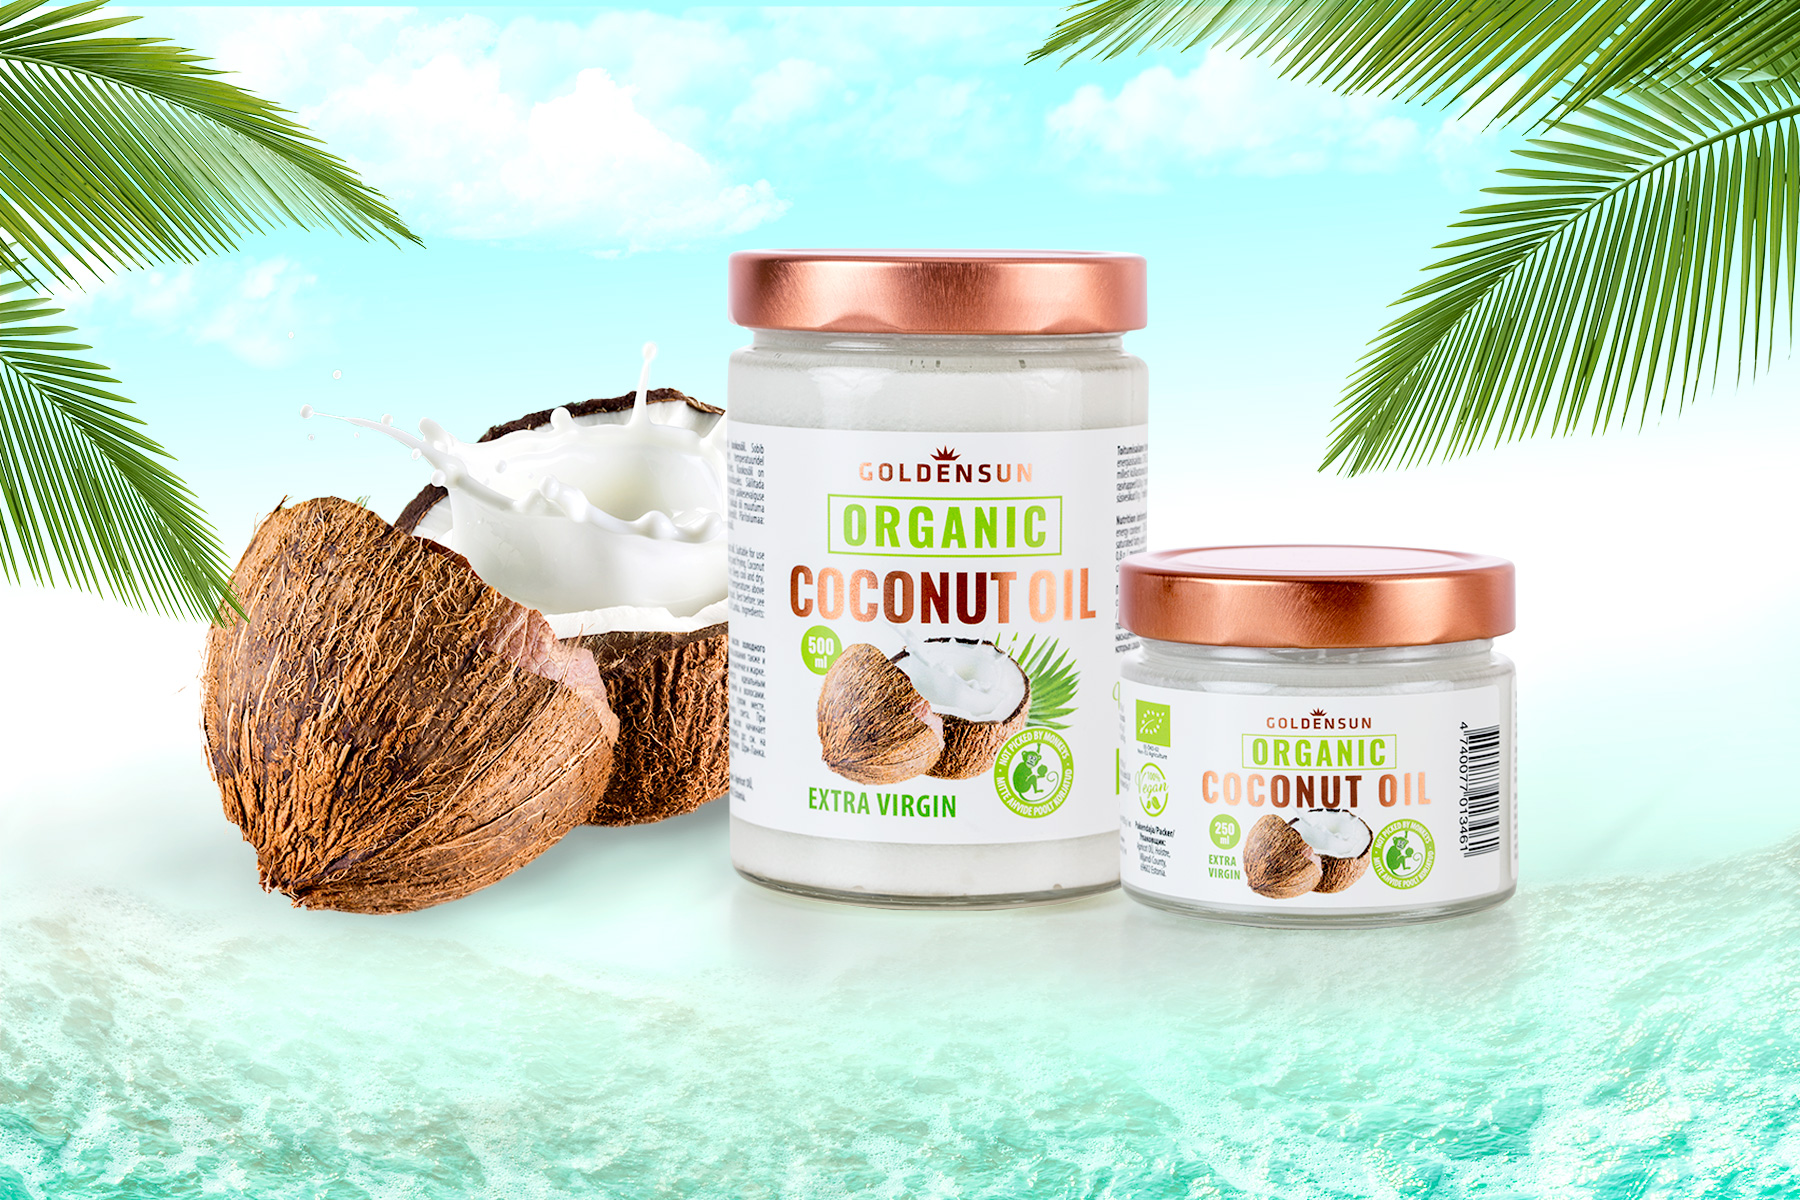 Golden Sun Coconut Oil